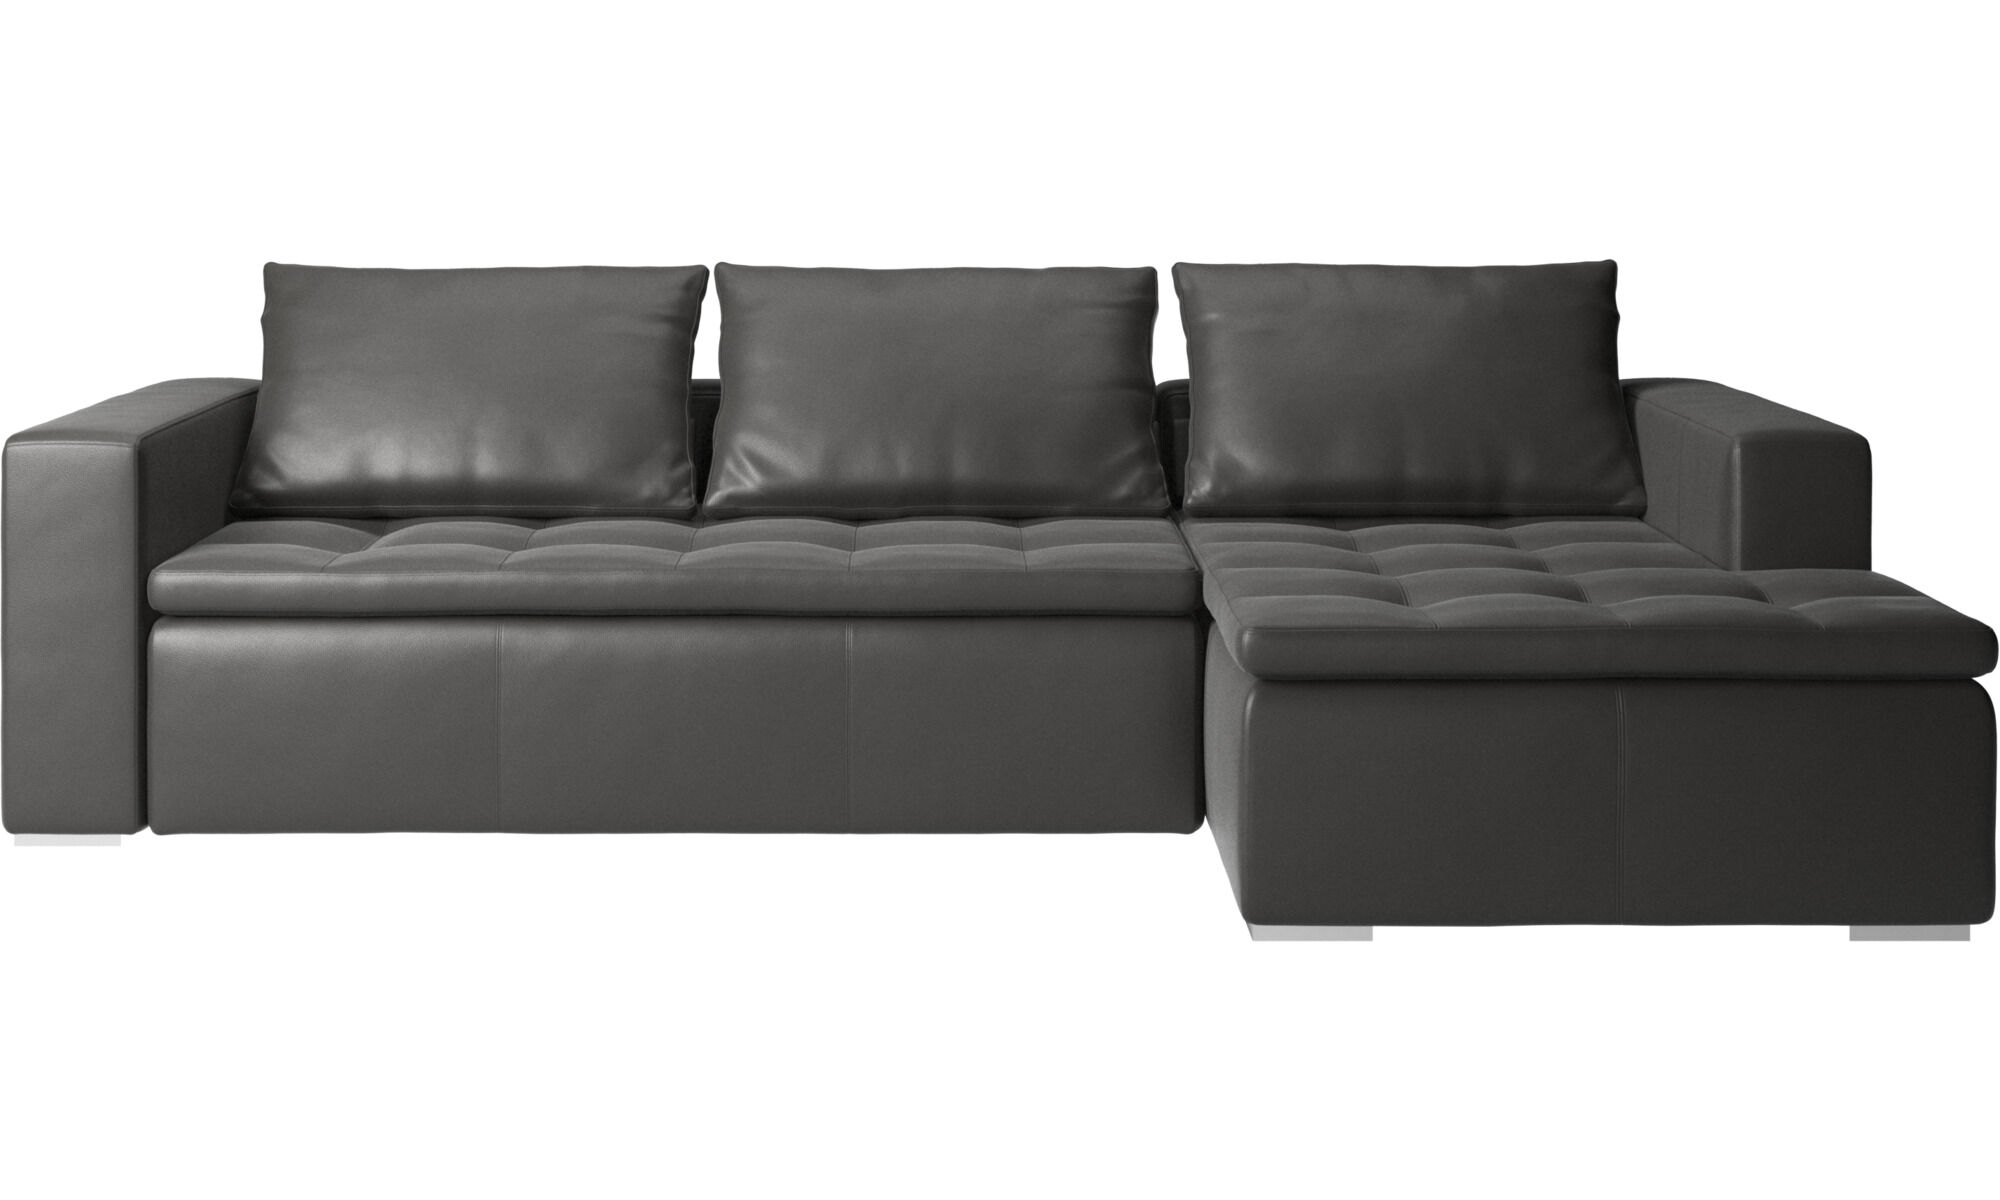 Chaise longue sofas - Mezzo sofa with resting unit - Grey - Leather  sc 1 st  BoConcept : chaise longue sofa - Sectionals, Sofas & Couches